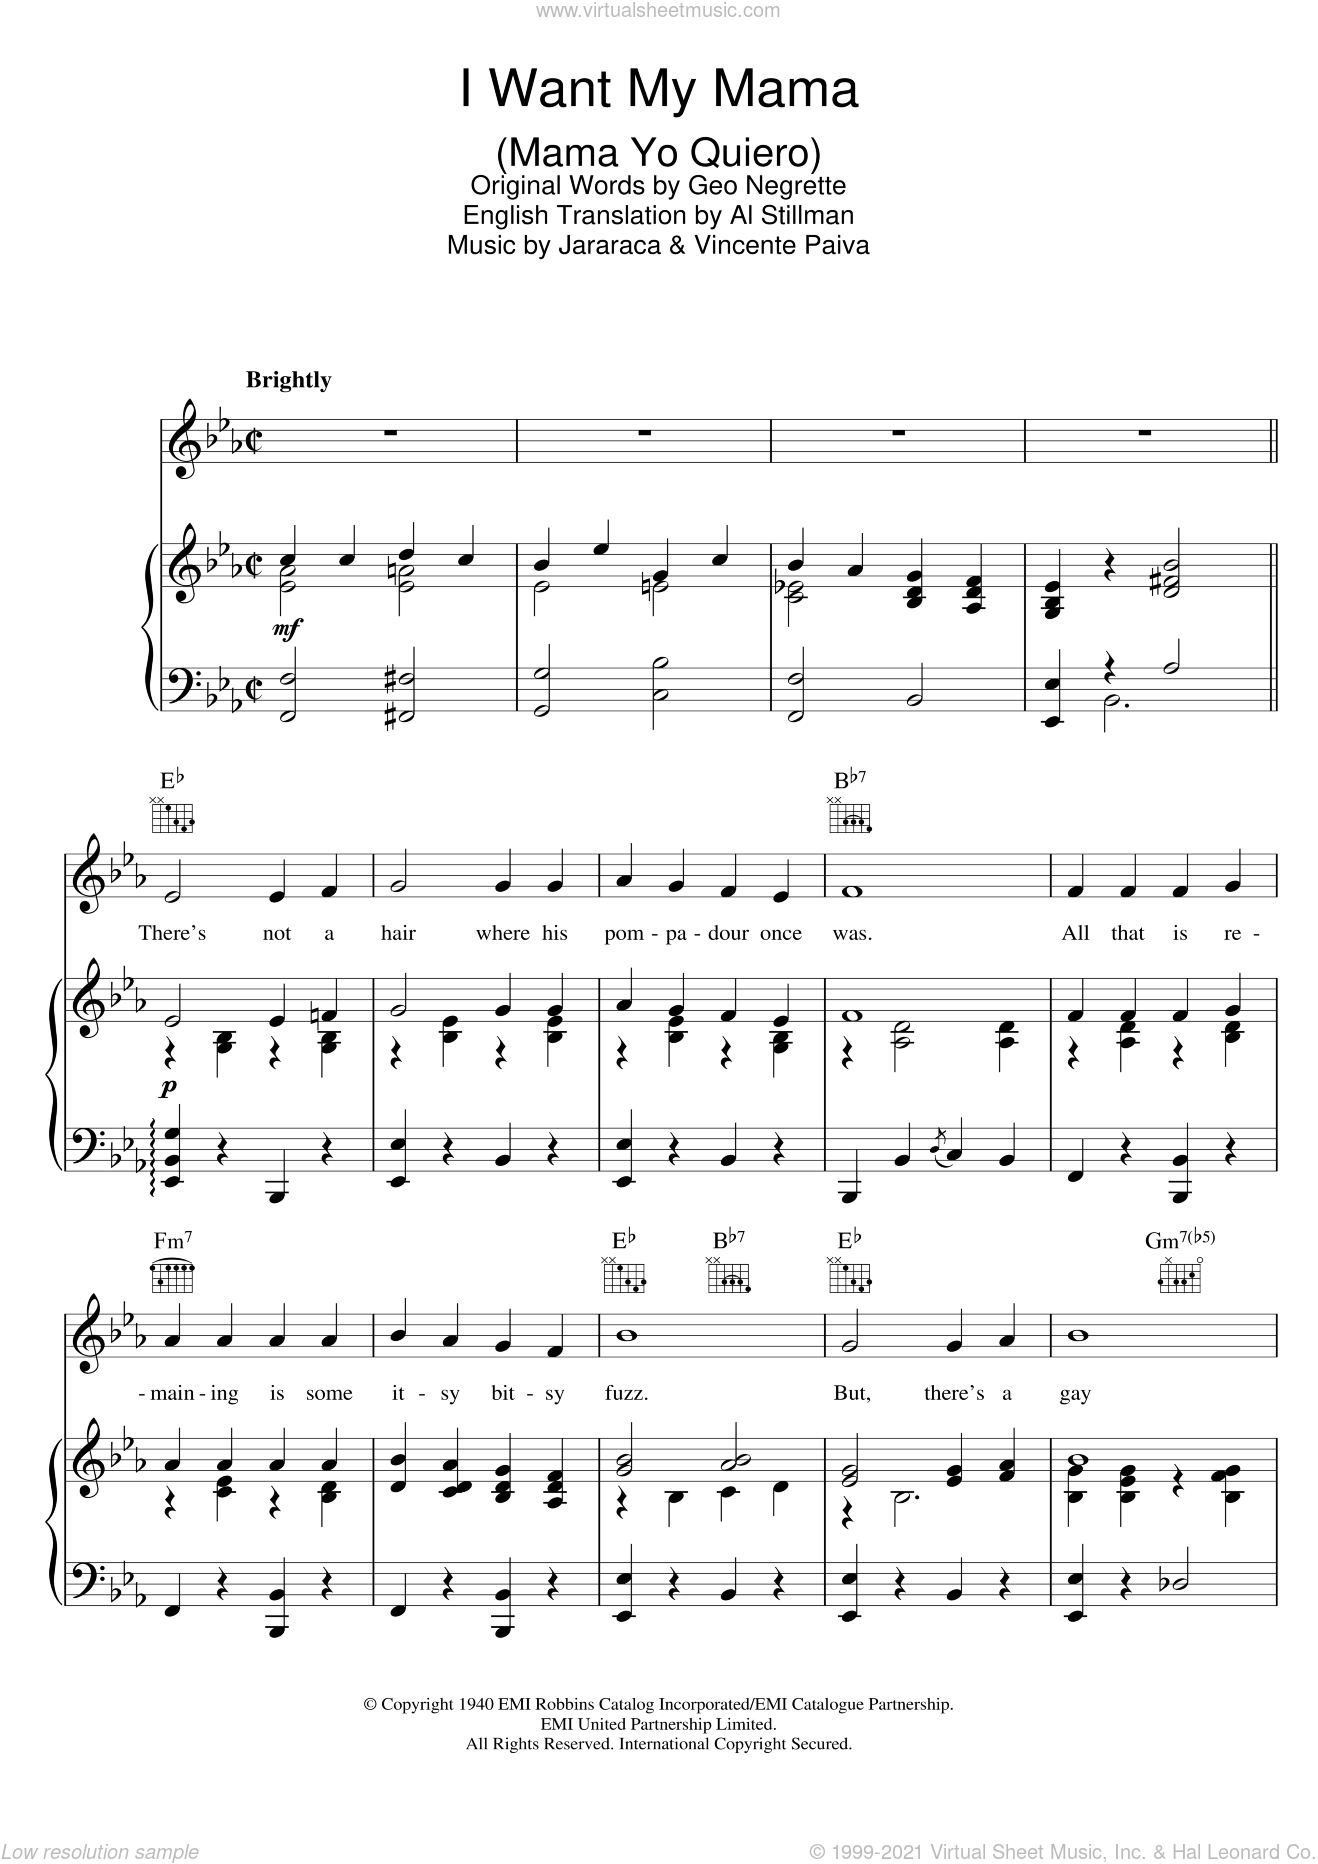 I Want My Mama (Mama Yo Quiero) sheet music for voice, piano or guitar by The Andrews Sisters and Al Stillman, intermediate voice, piano or guitar. Score Image Preview.